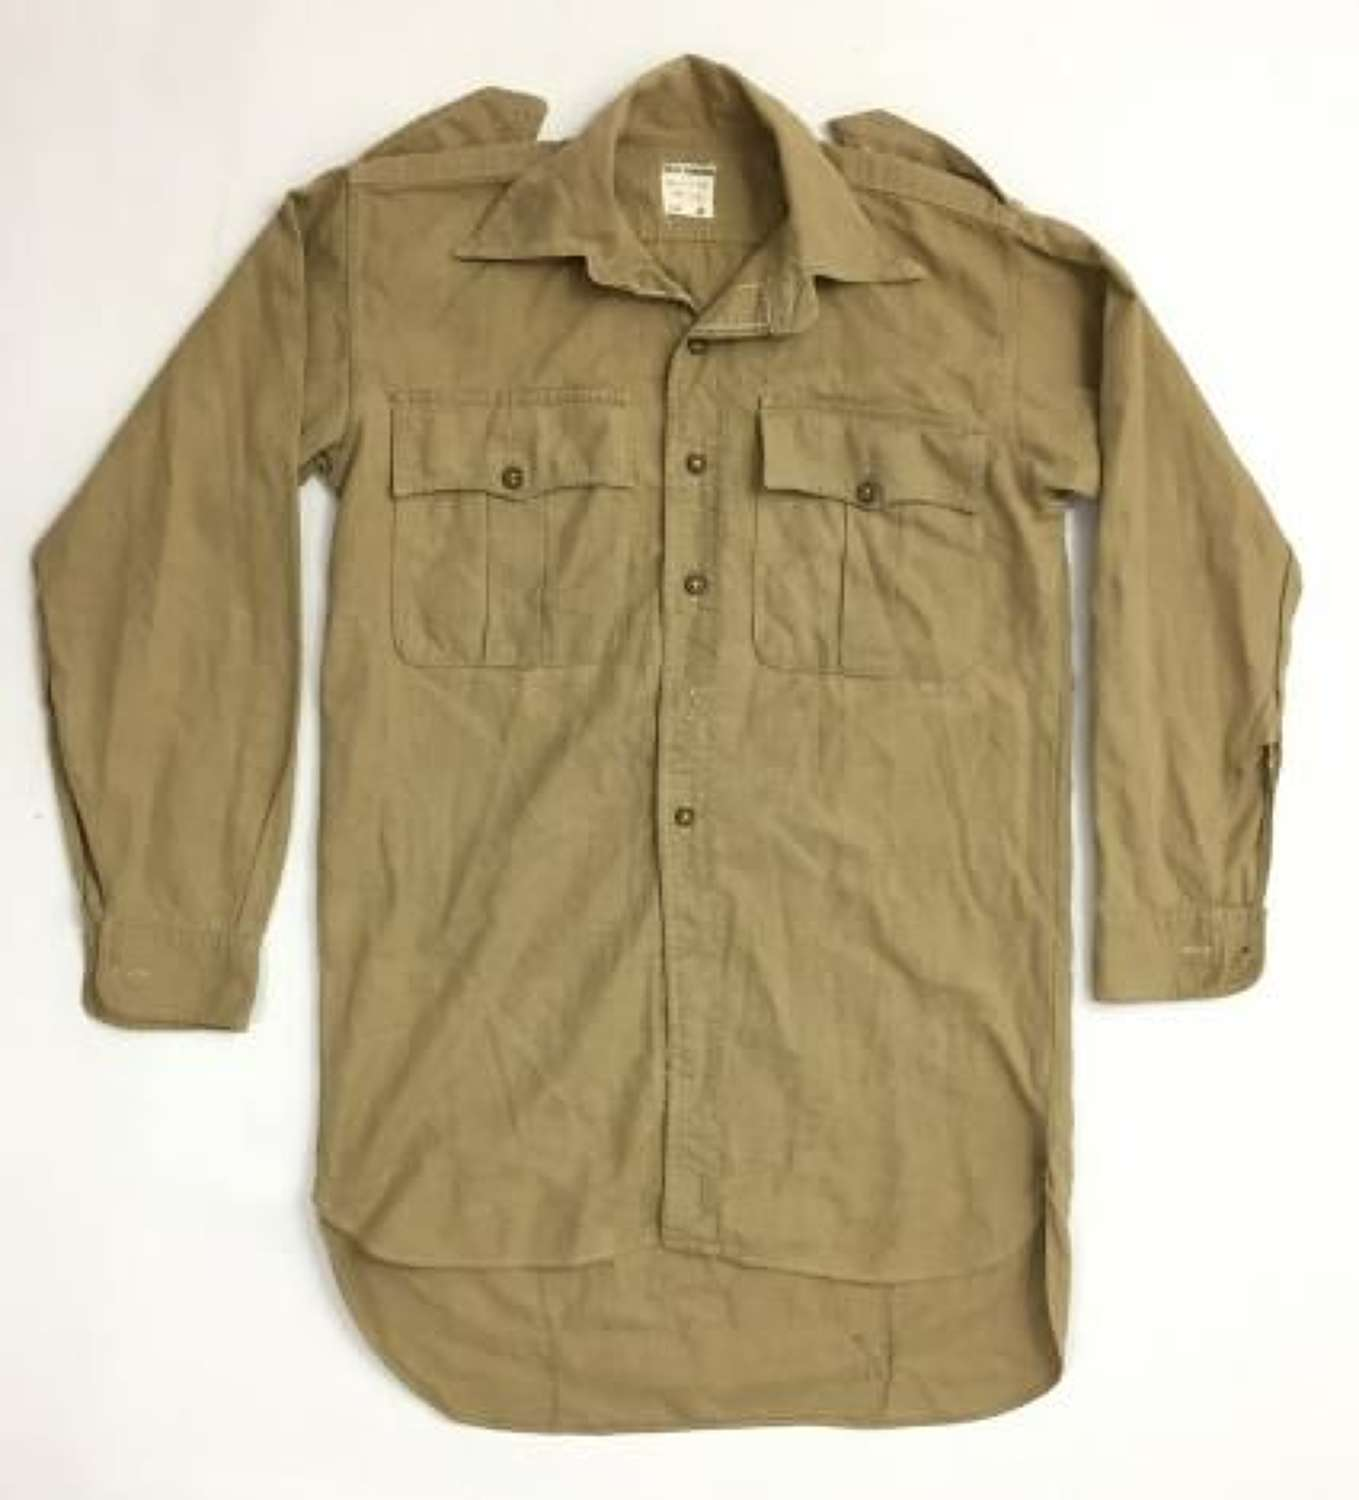 Original 1956 Dated British Army Khaki Drill Shirt